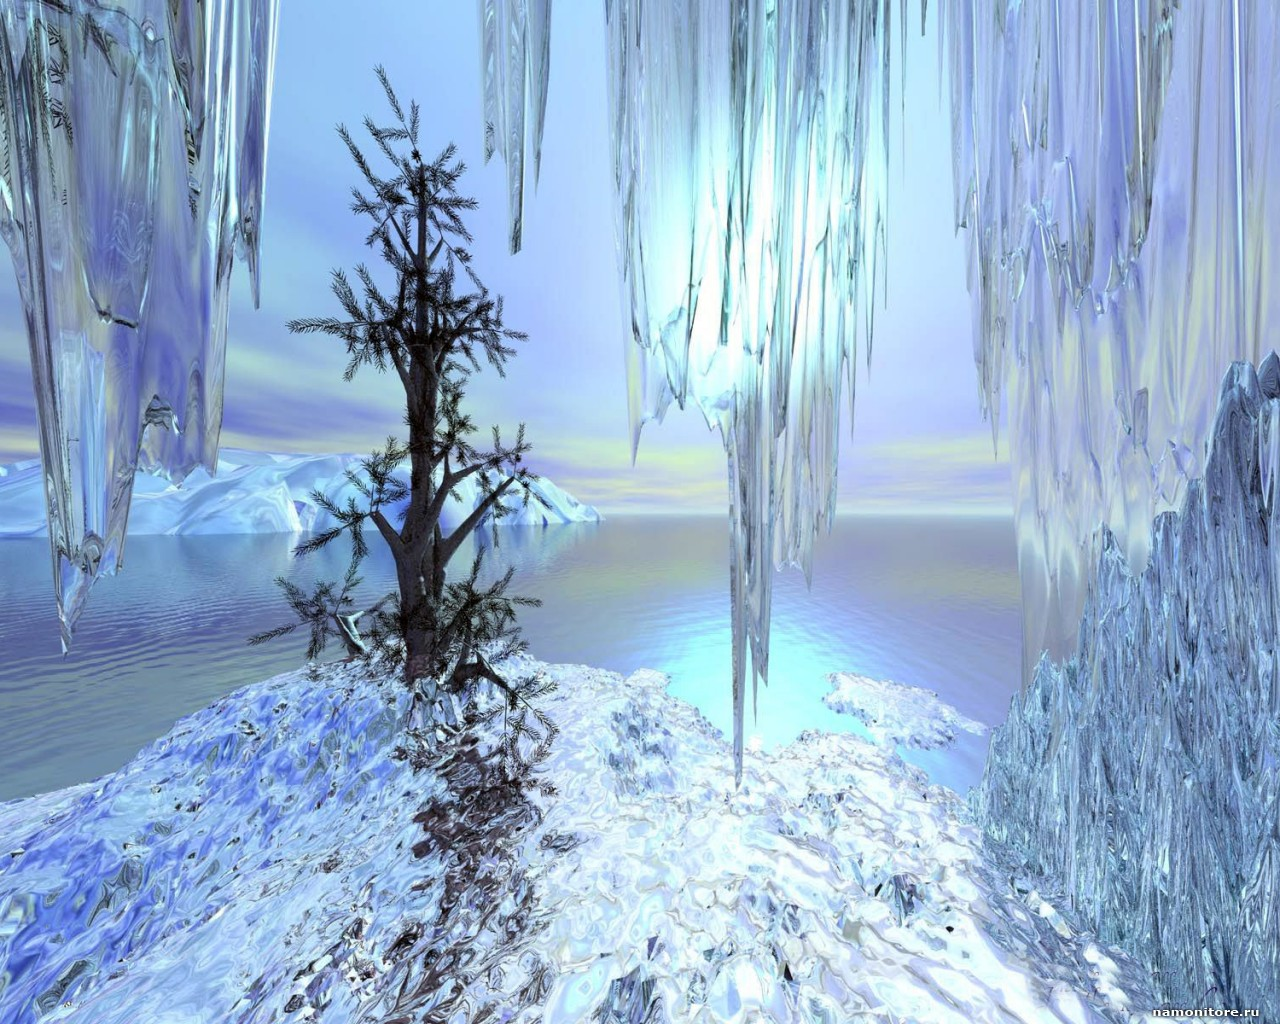 The Fur tree in snow and icicles, 3D, dark blue, drawed, Winter 1632